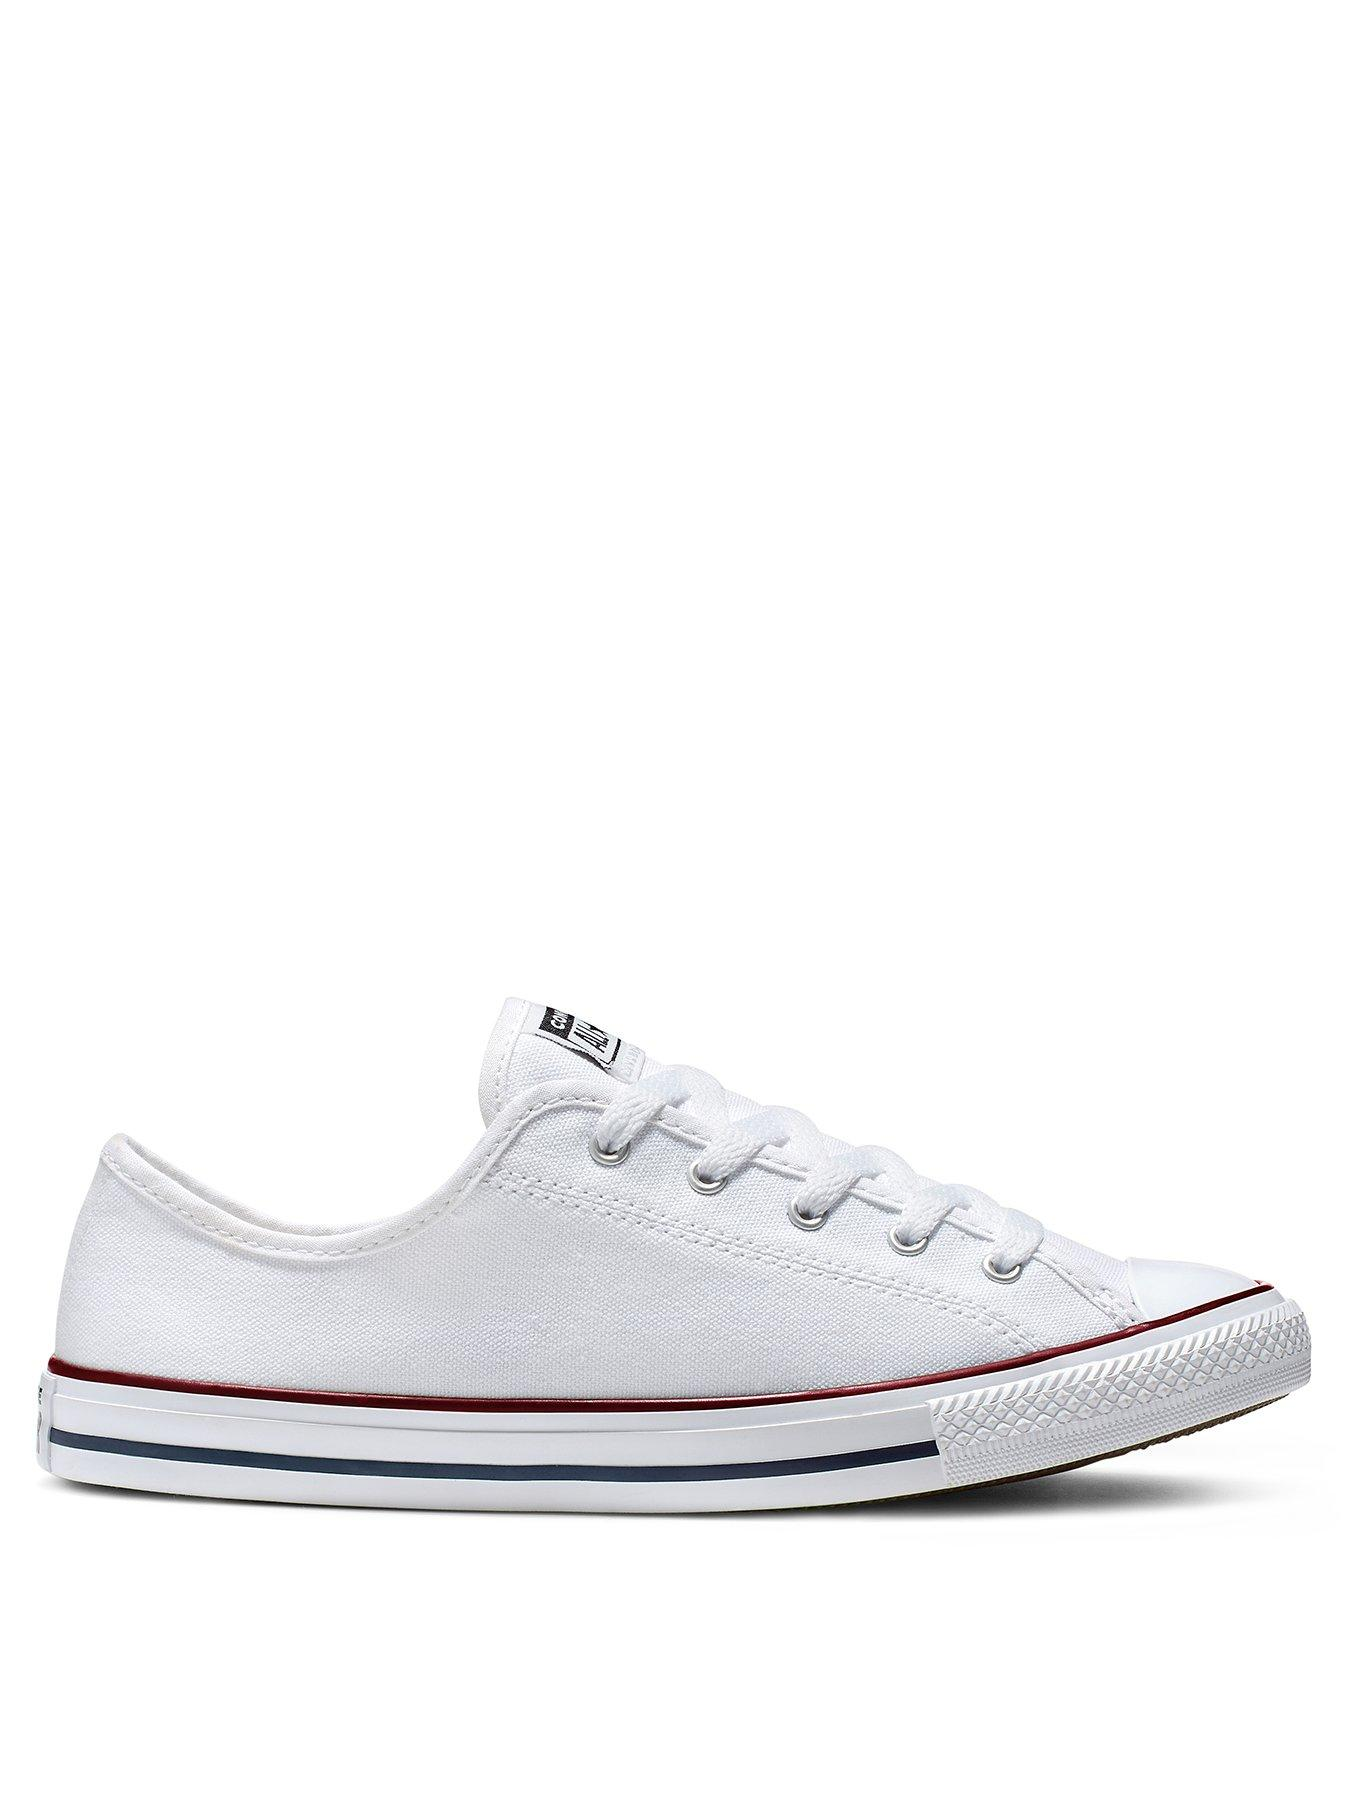 Converse Shoes, Trainers \u0026 Clothing